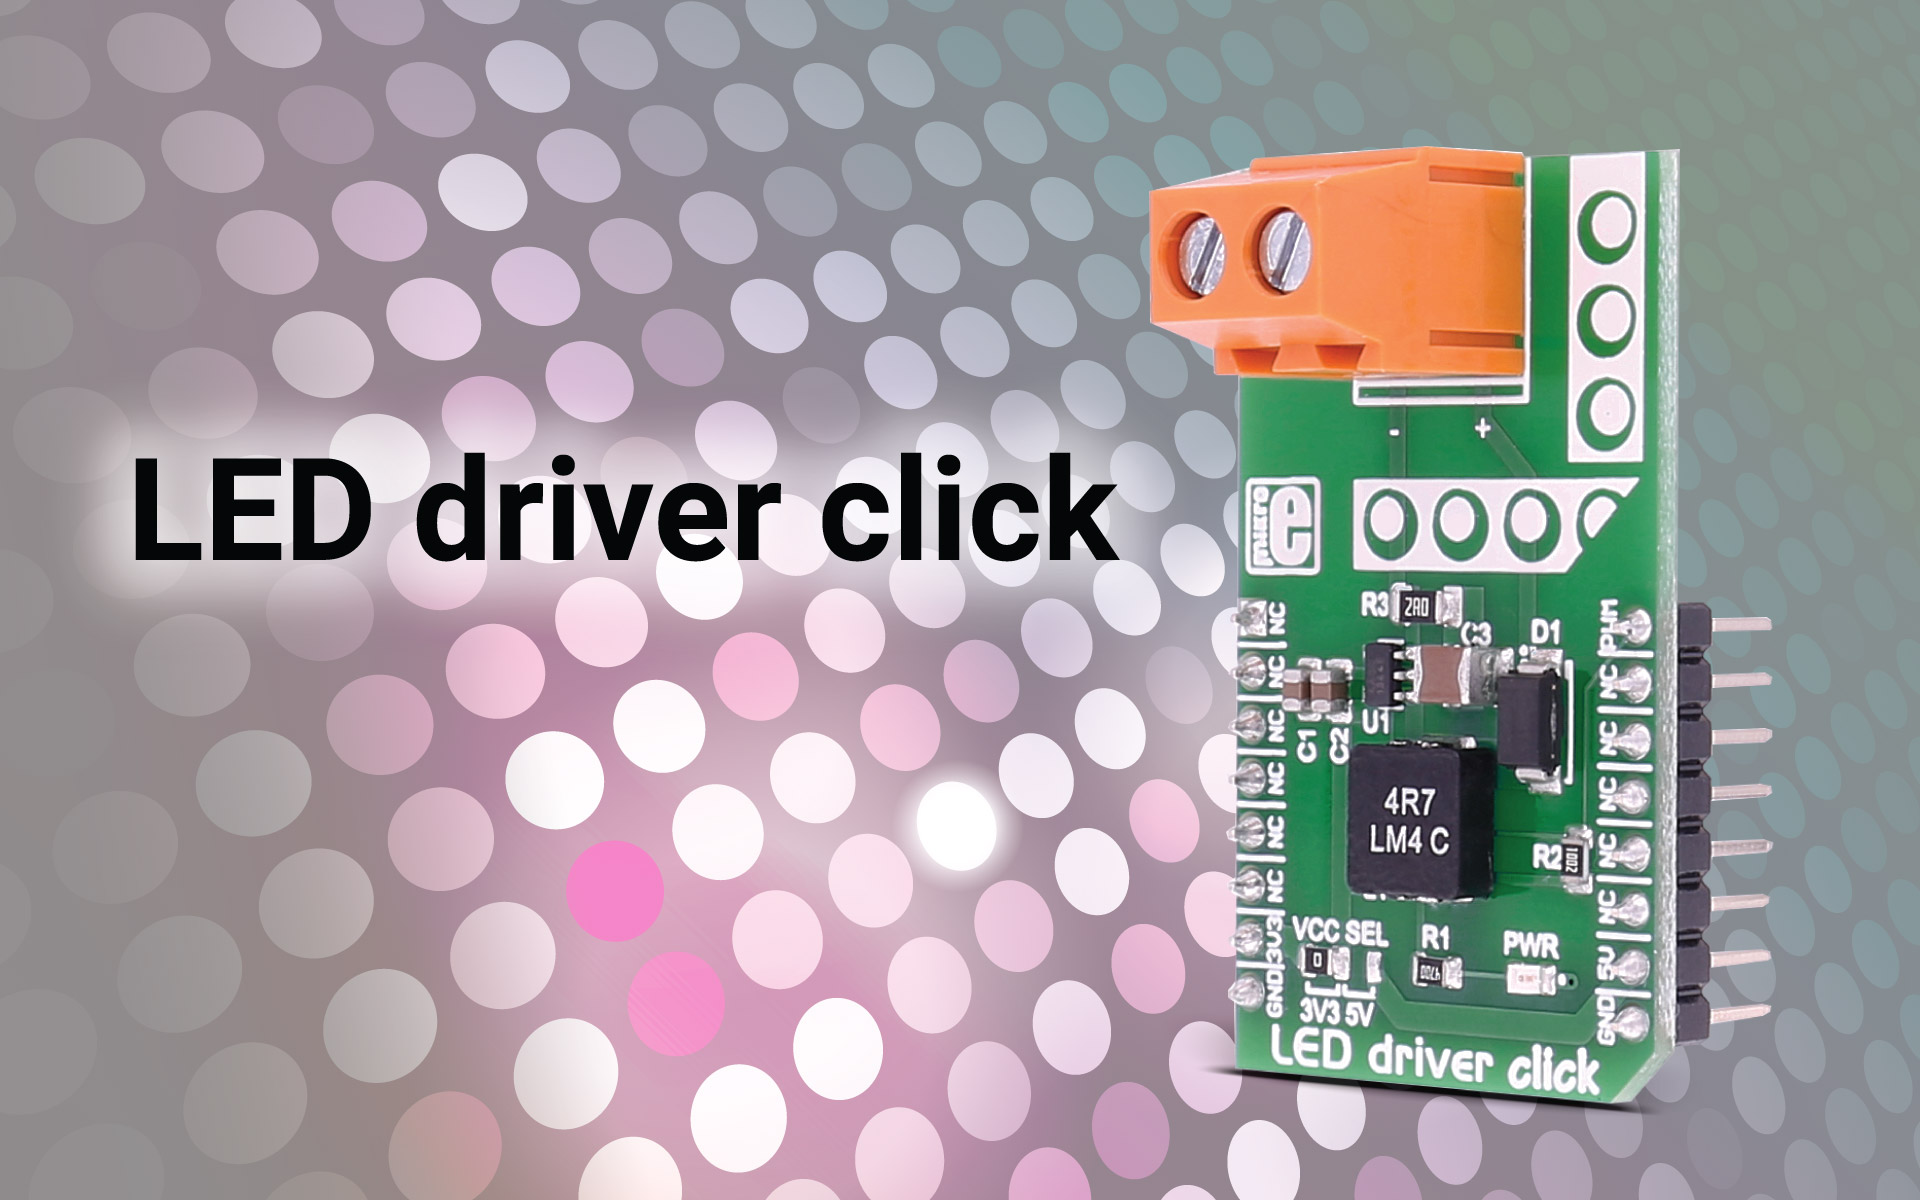 LED driver click - brighten up your project